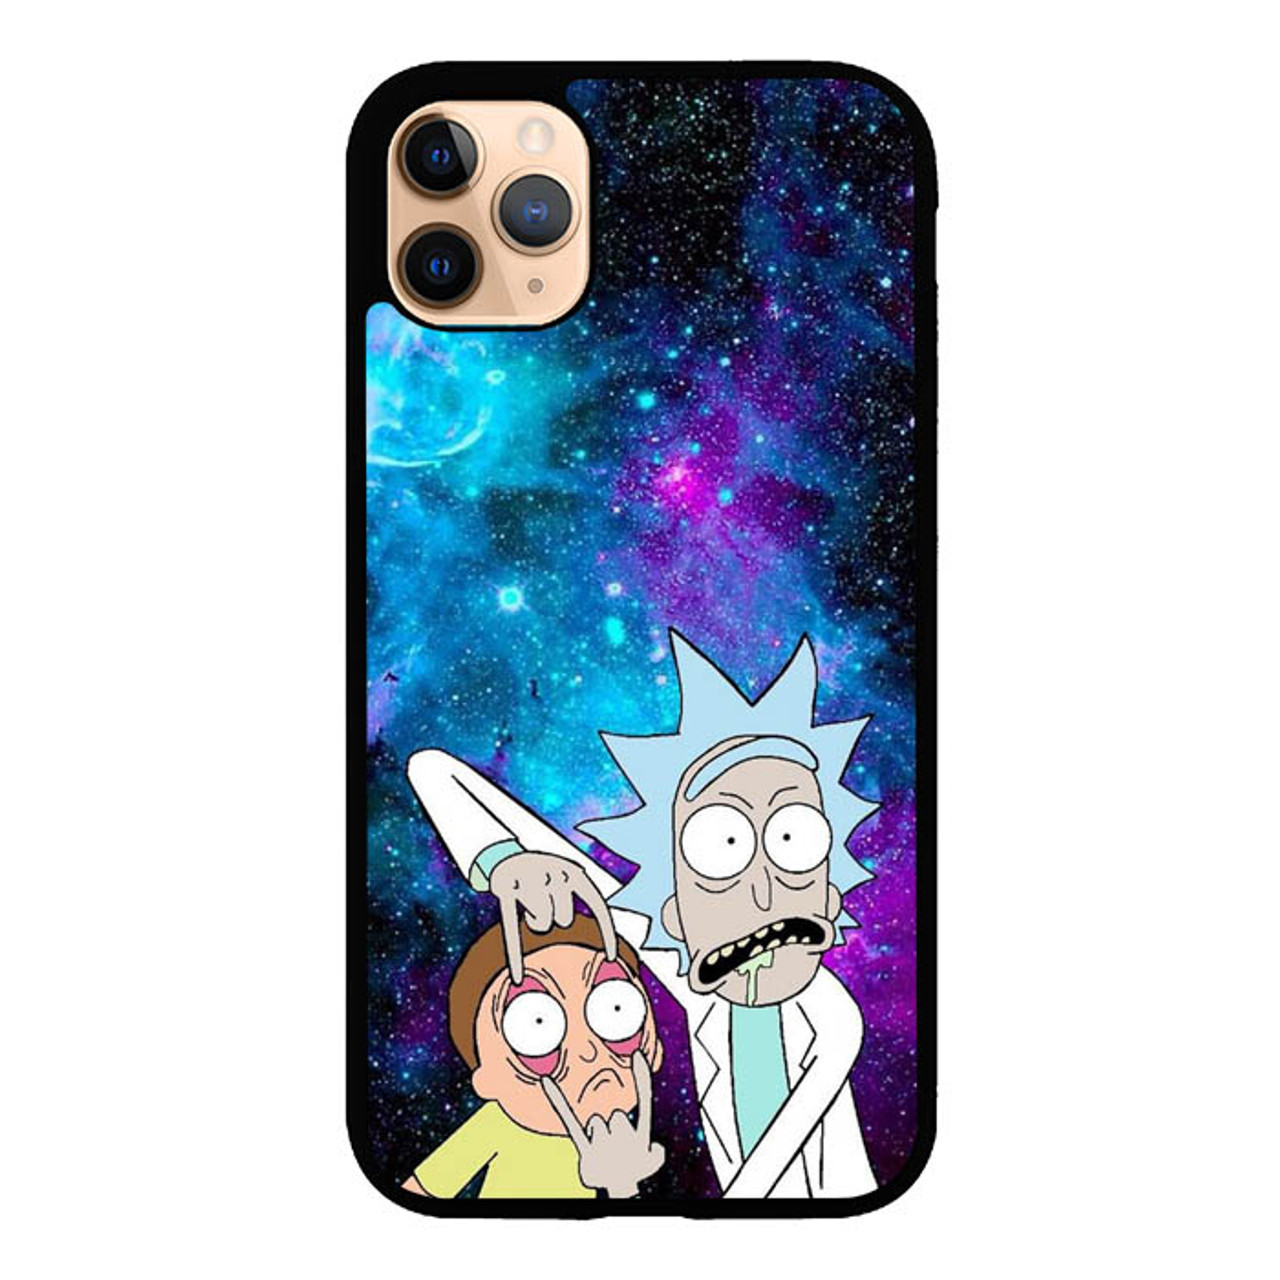 Rick And Morty Wallpaper Q0220 Iphone 11 Pro Max Case Flazzy Store